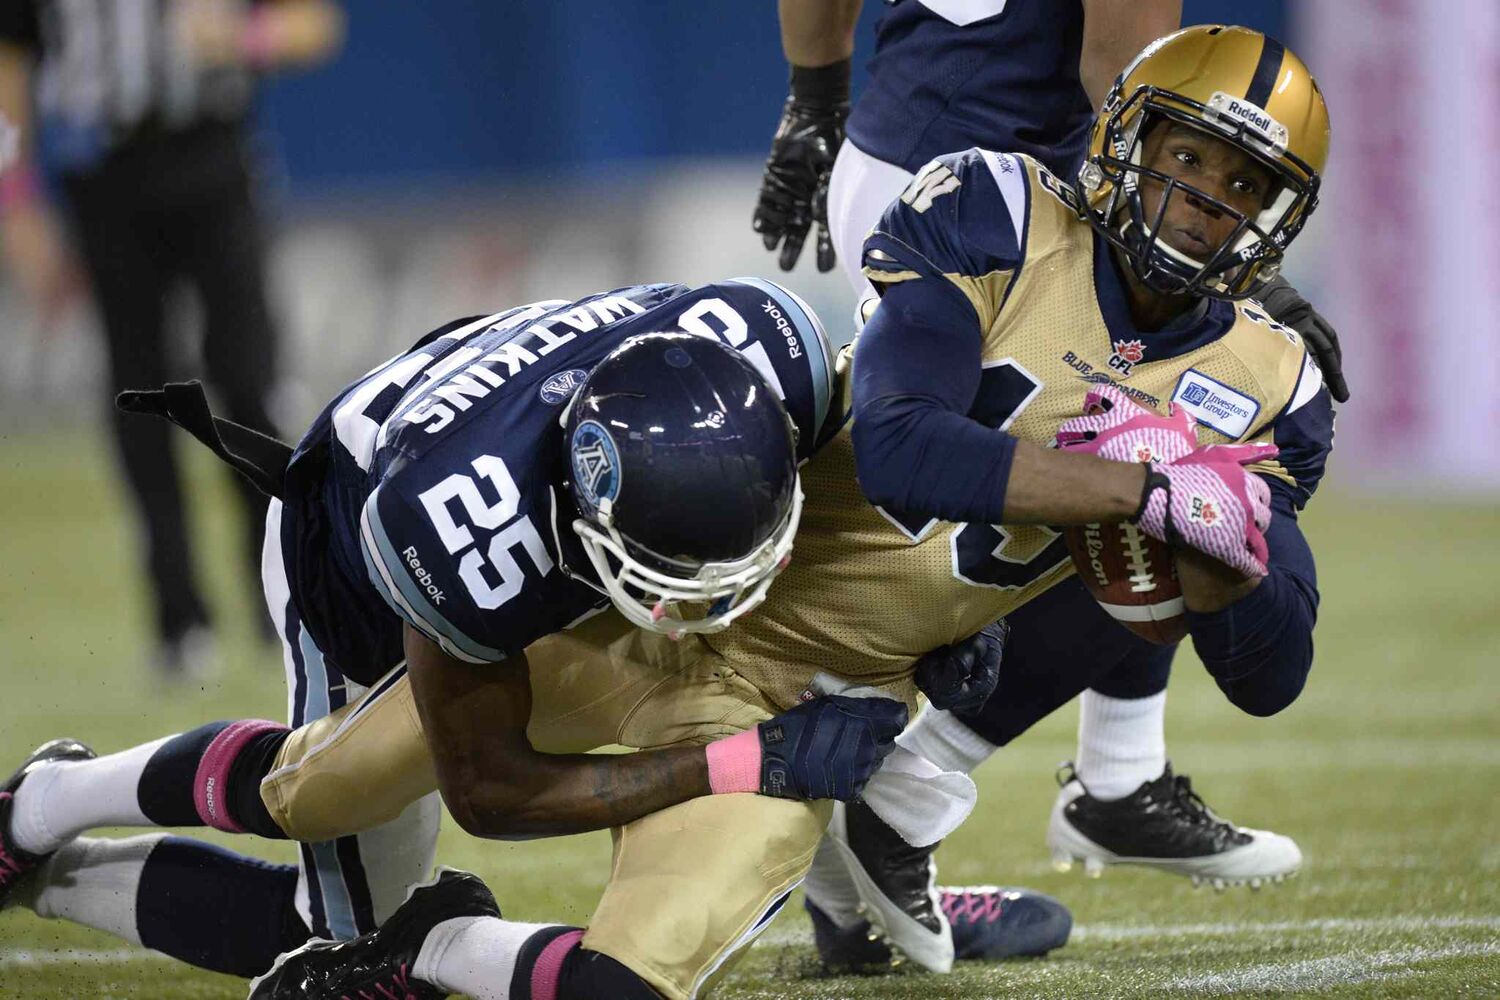 Winnipeg Blue Bombers' Jake Killeen is stopped by Toronto Argonauts' Pat Watkins during the first quarter. (Frank Gunn / The Canadian Press)